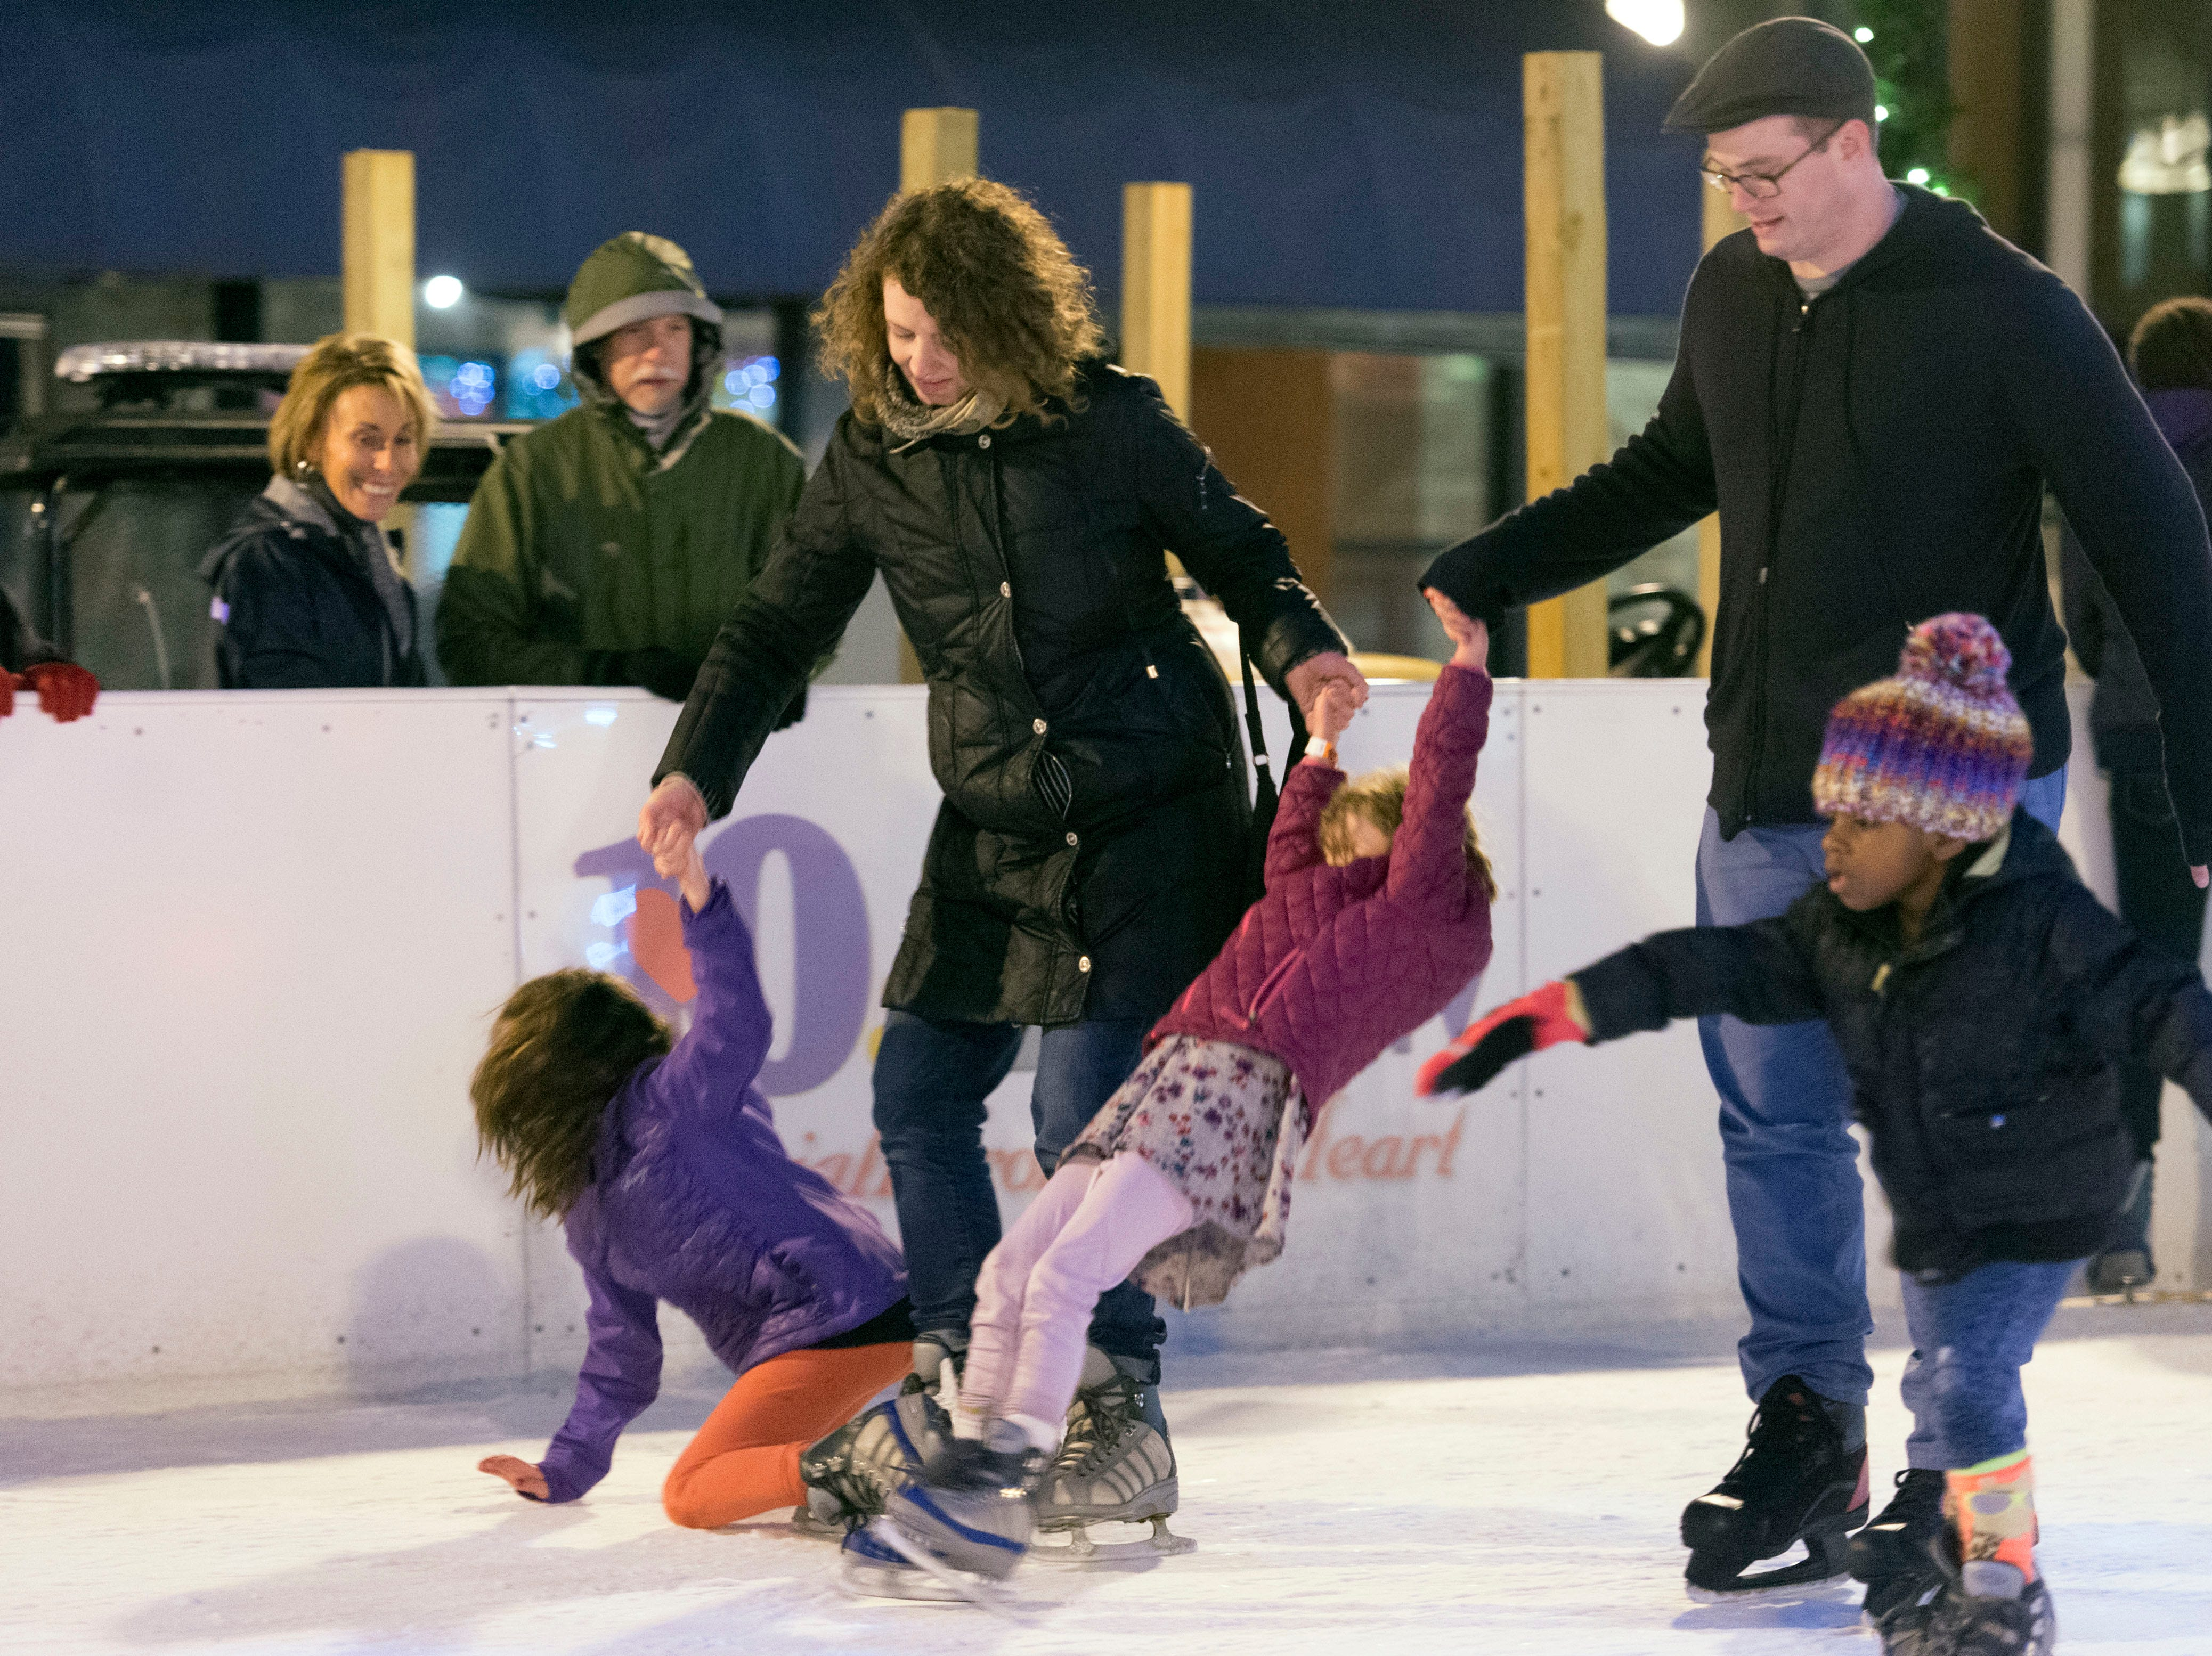 A family ice skate together at the Holiday's on Ice skate rink in Market Square on New Year's Eve, Thursday, December 31, 2015.